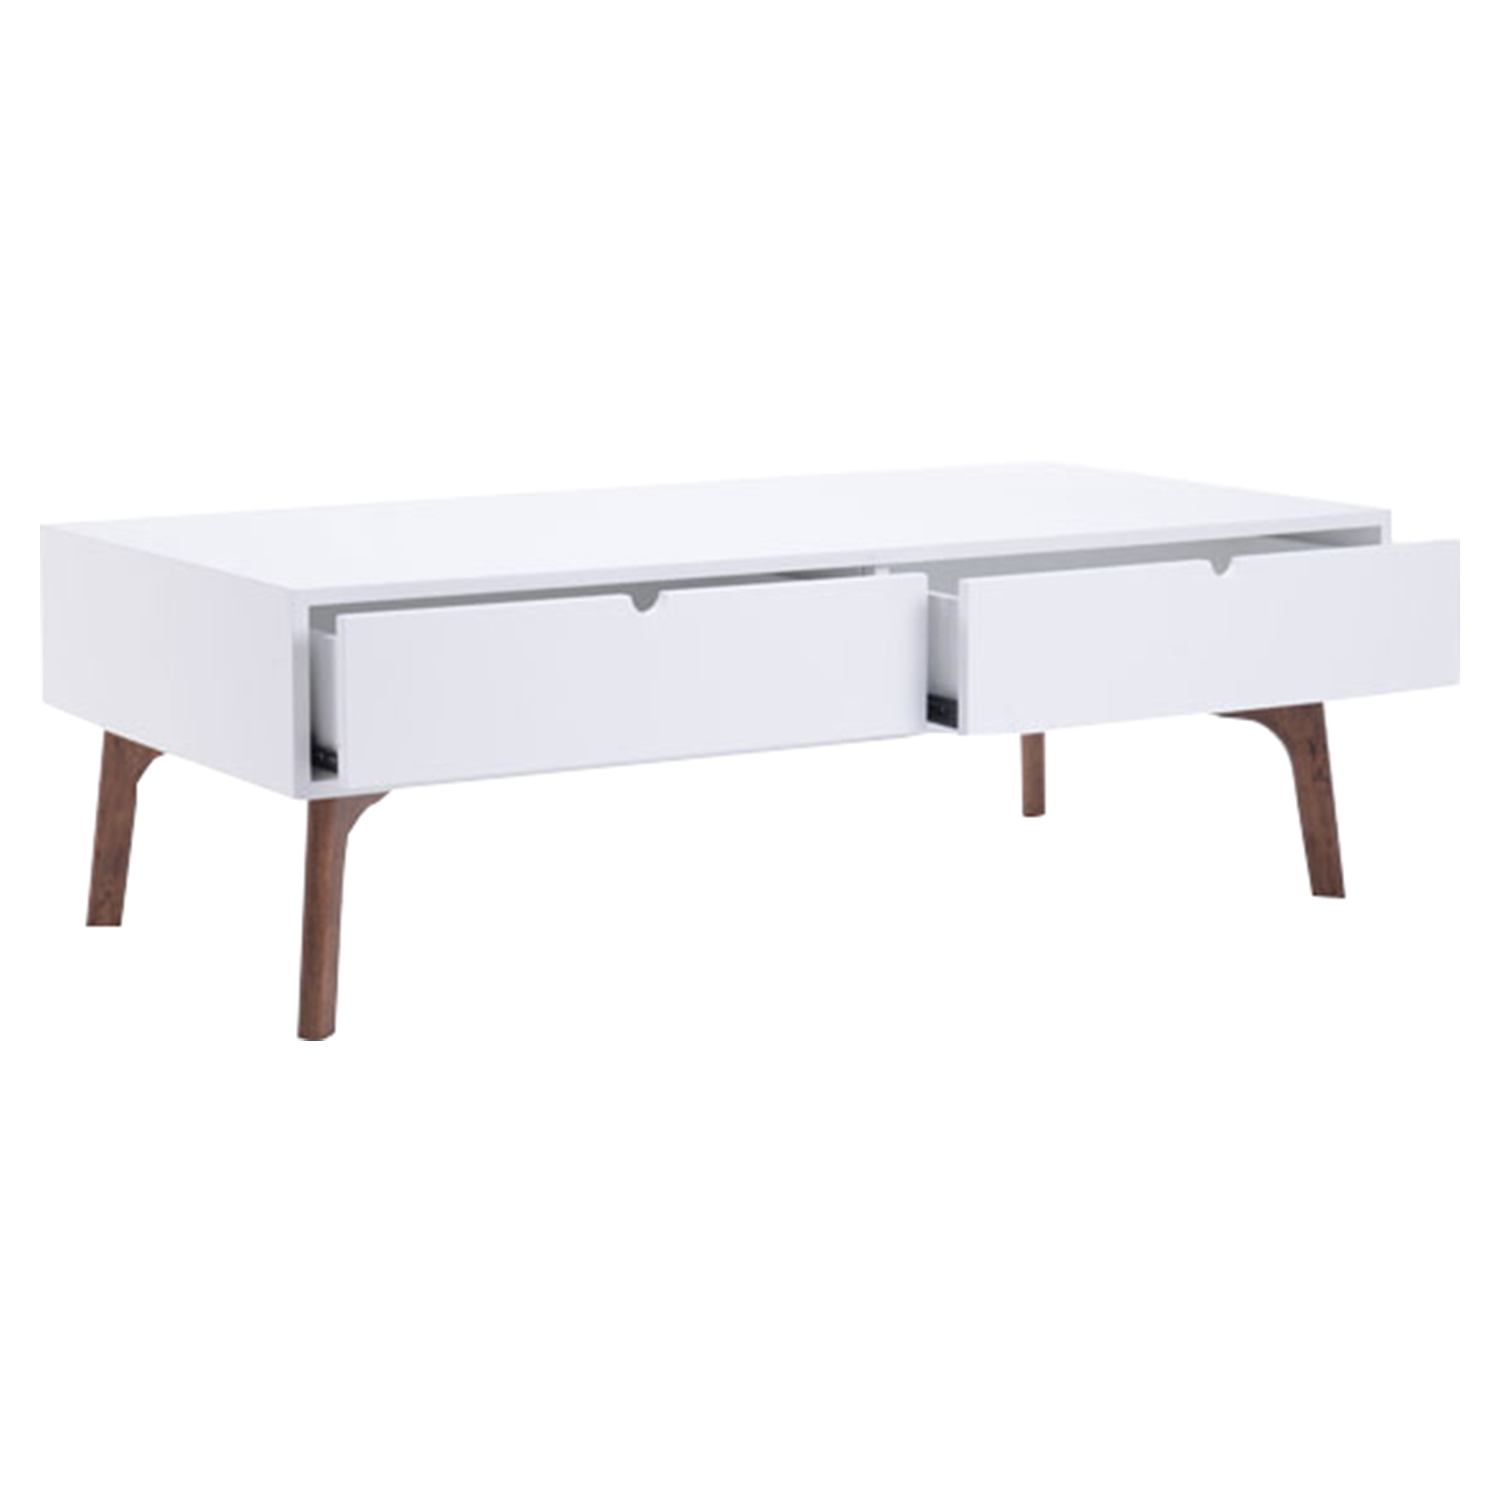 Padre Coffee Table - Walnut and White - ZM-100148